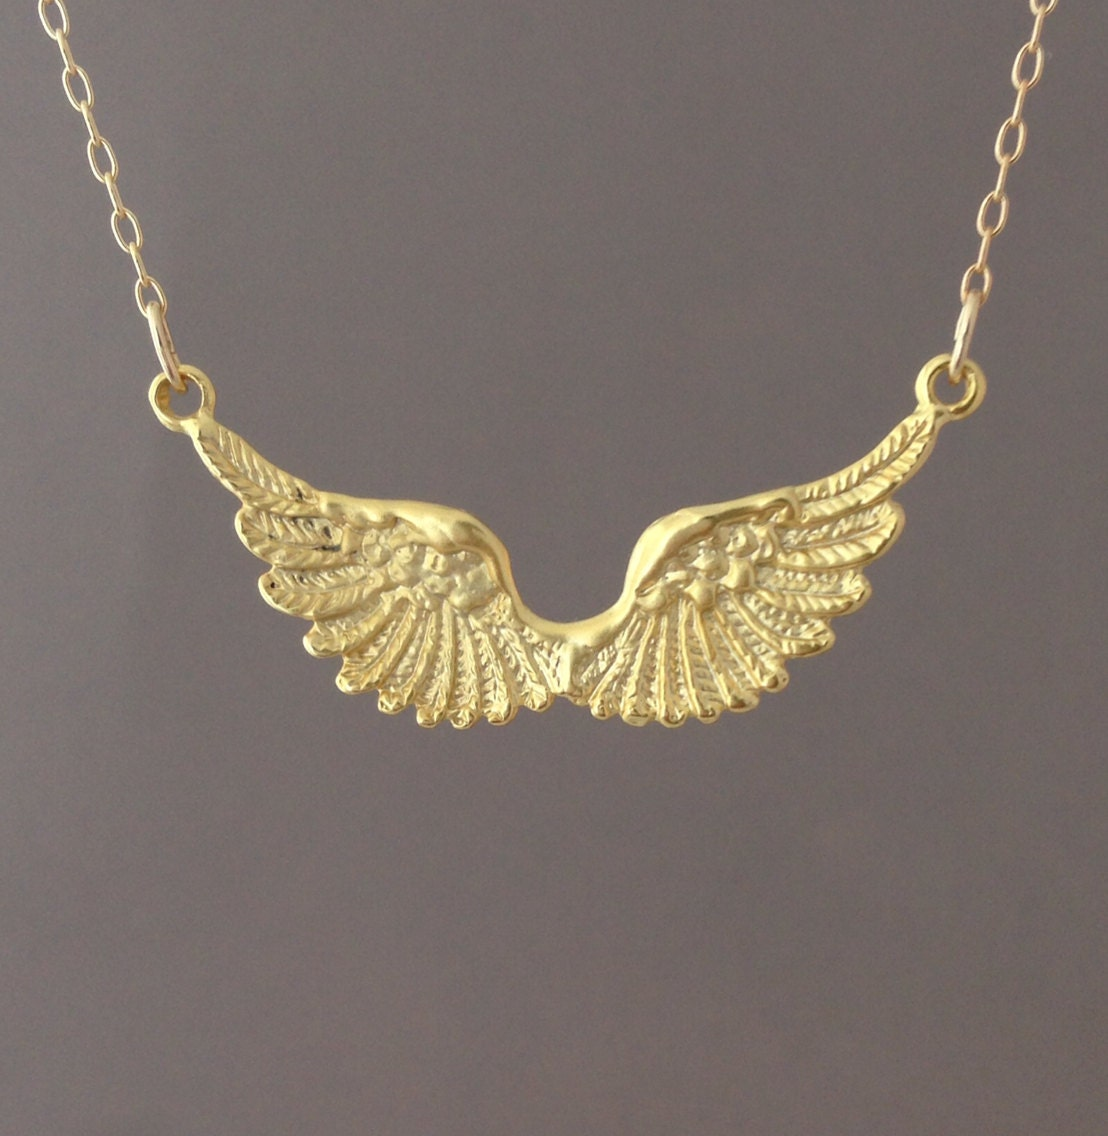 silver pendant wing wings necklace jewellery bestow shop double angel